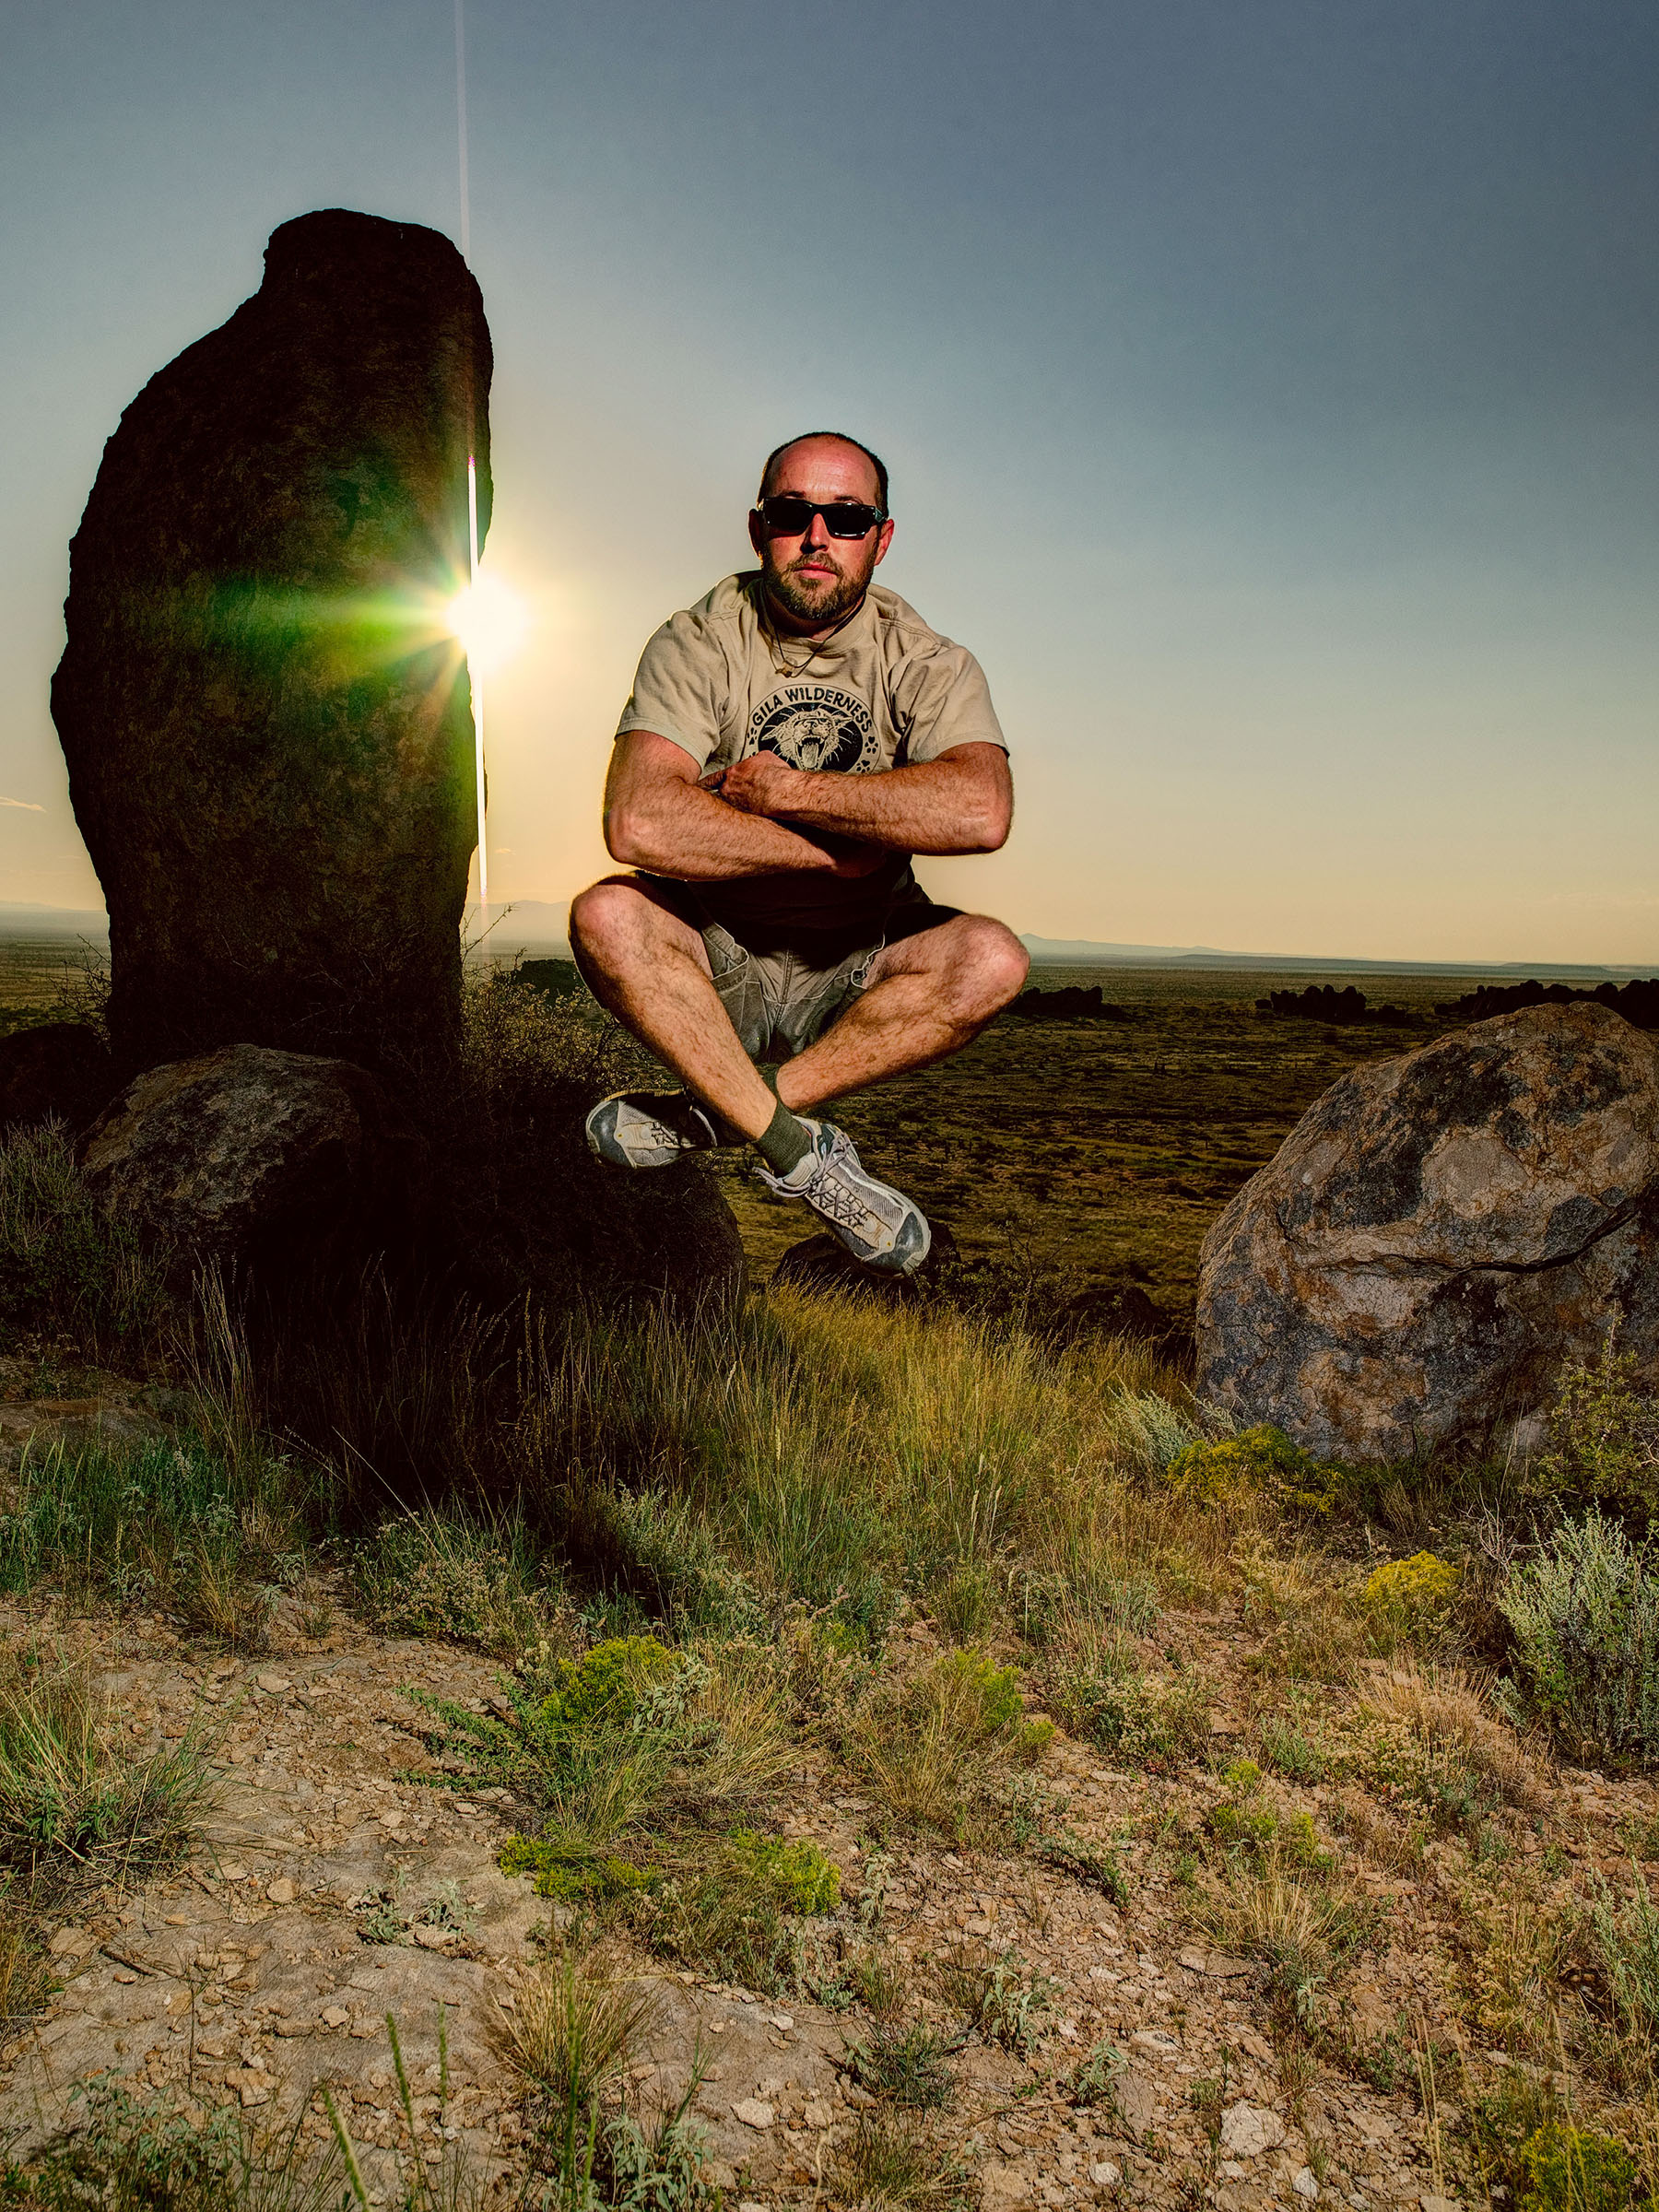 Aari Werber throws a buddha pose, City of Rocks, NM, Wick Beavers Advertising Photographer NYC